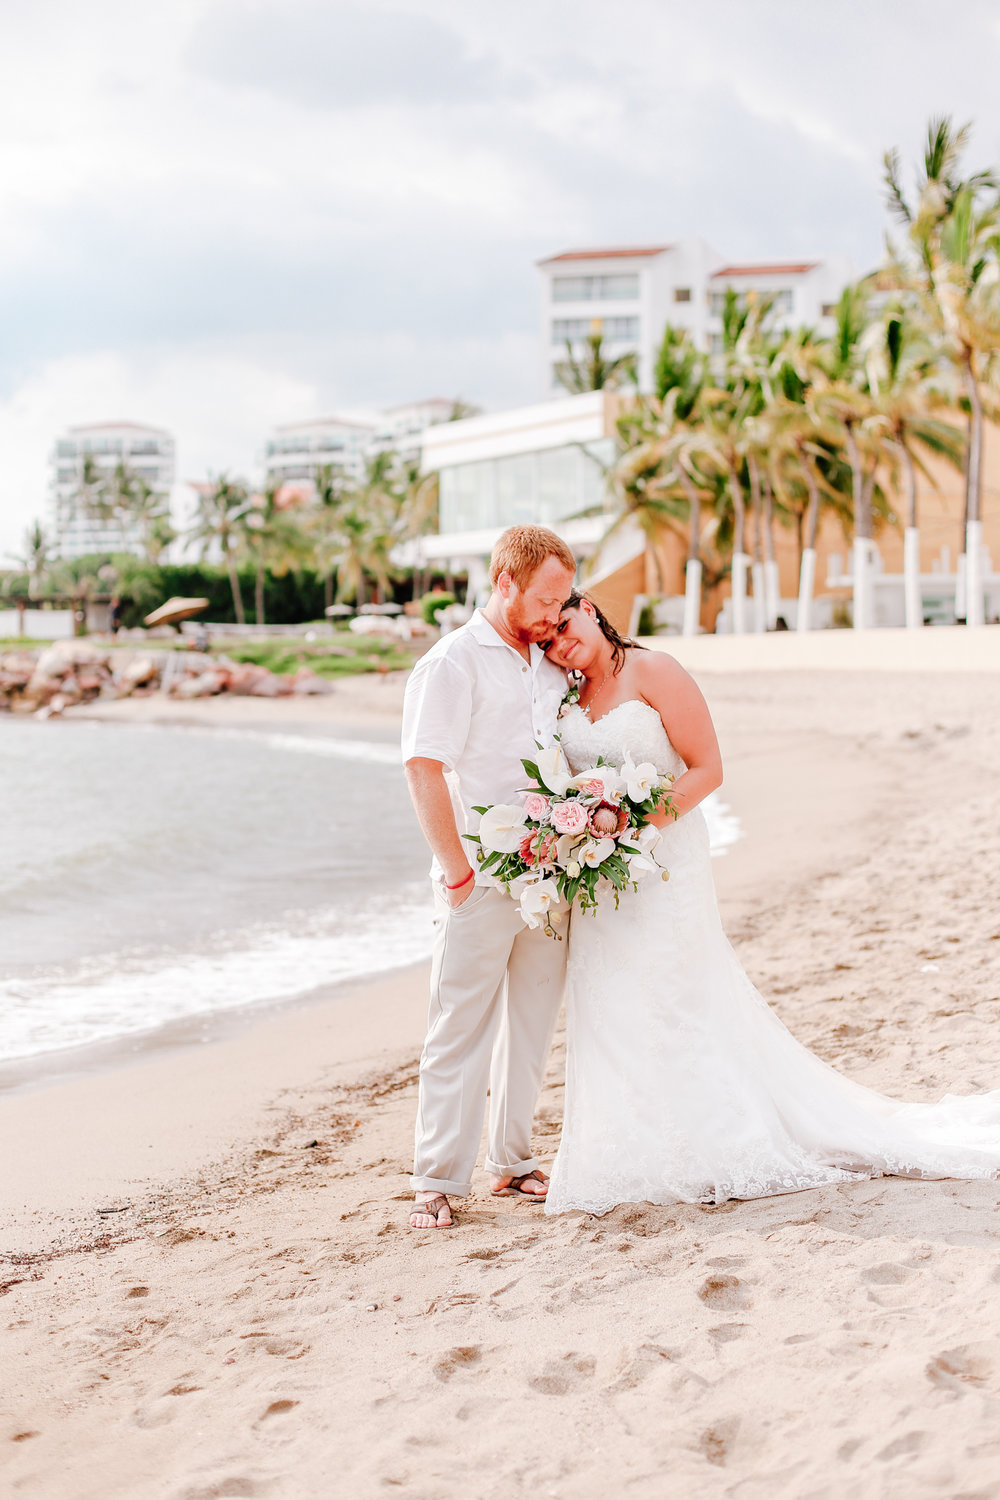 Tiffany and Ryan - Puerto Vallarta Wedding Photographer - 102.jpg